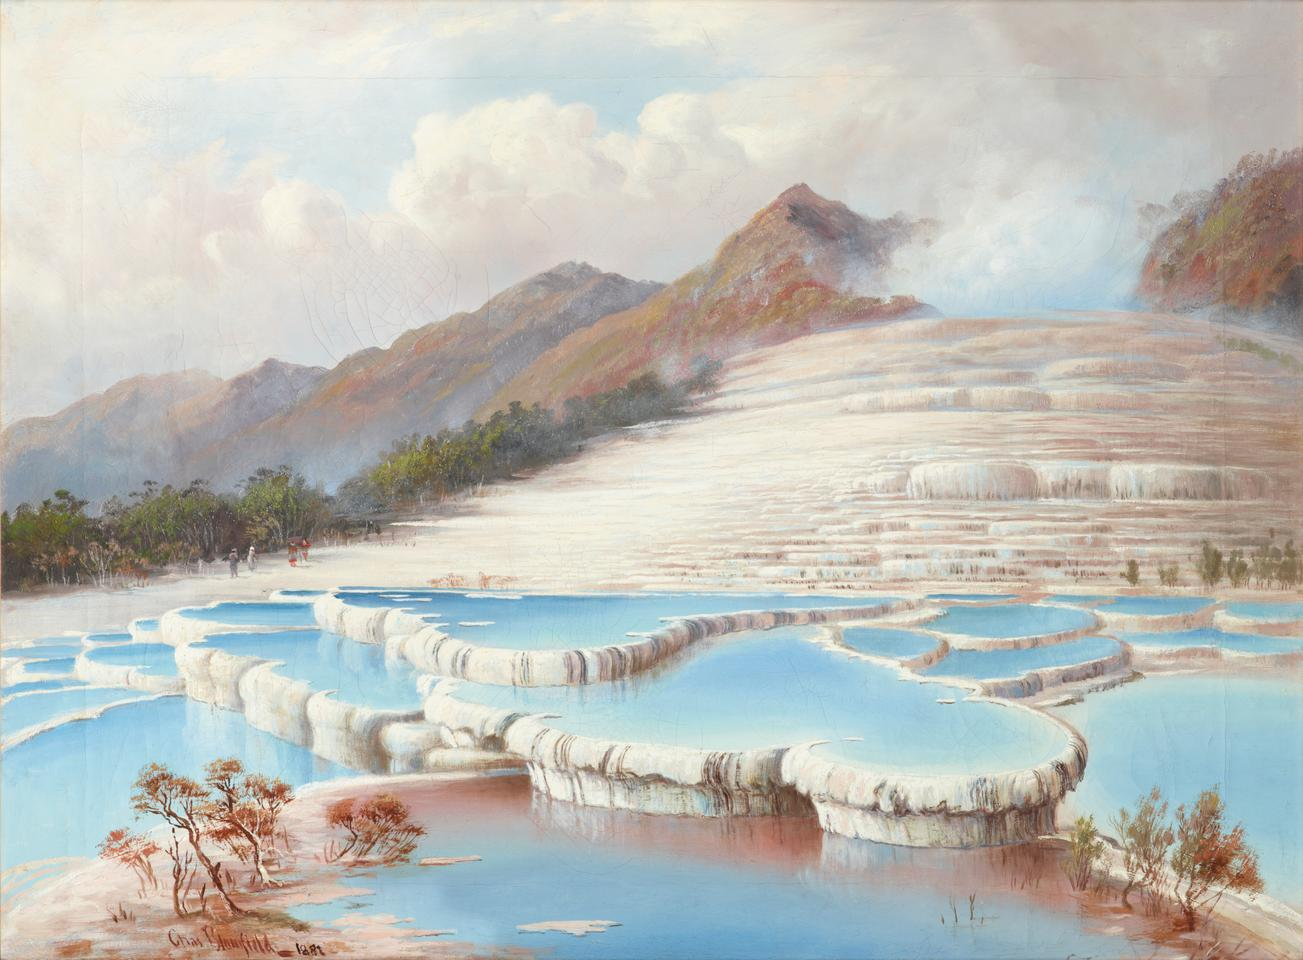 New Zealand's spectacular White Terraces, as painted by artist Charles Blomfield in 1882, just four years before their destruction.